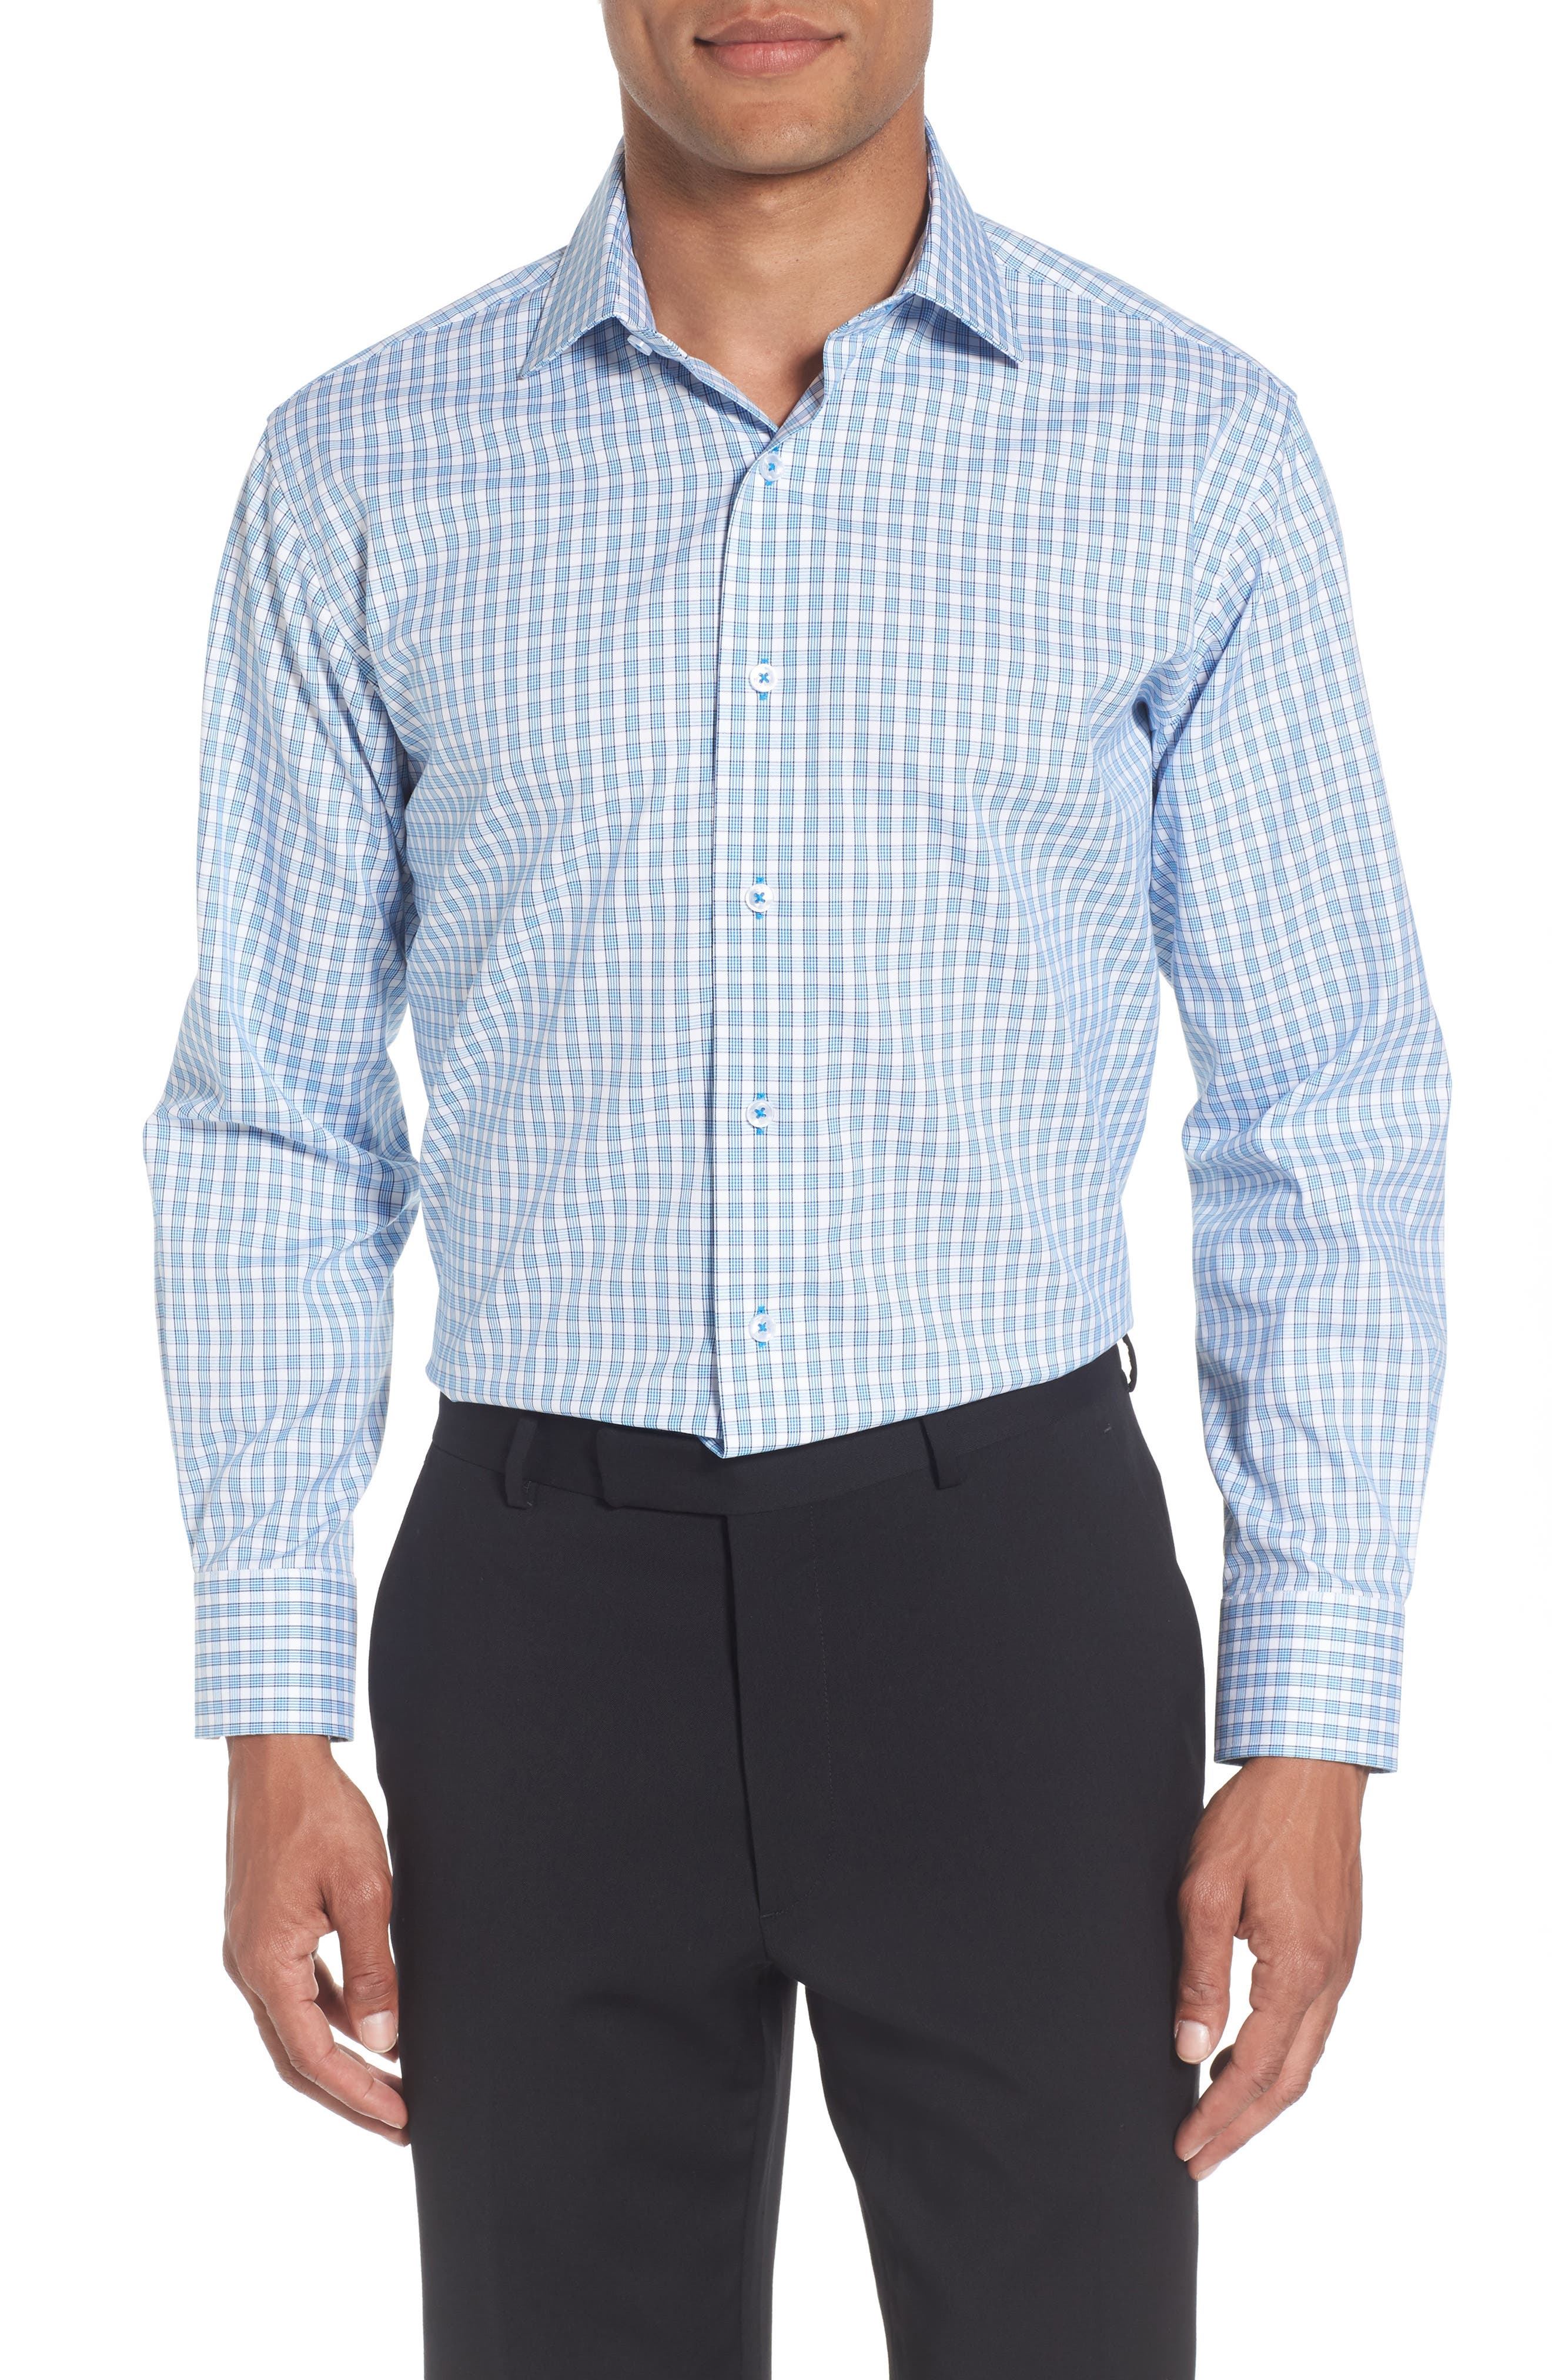 Trim Fit Plaid Dress Shirt,                             Main thumbnail 1, color,                             Light Blue/ White